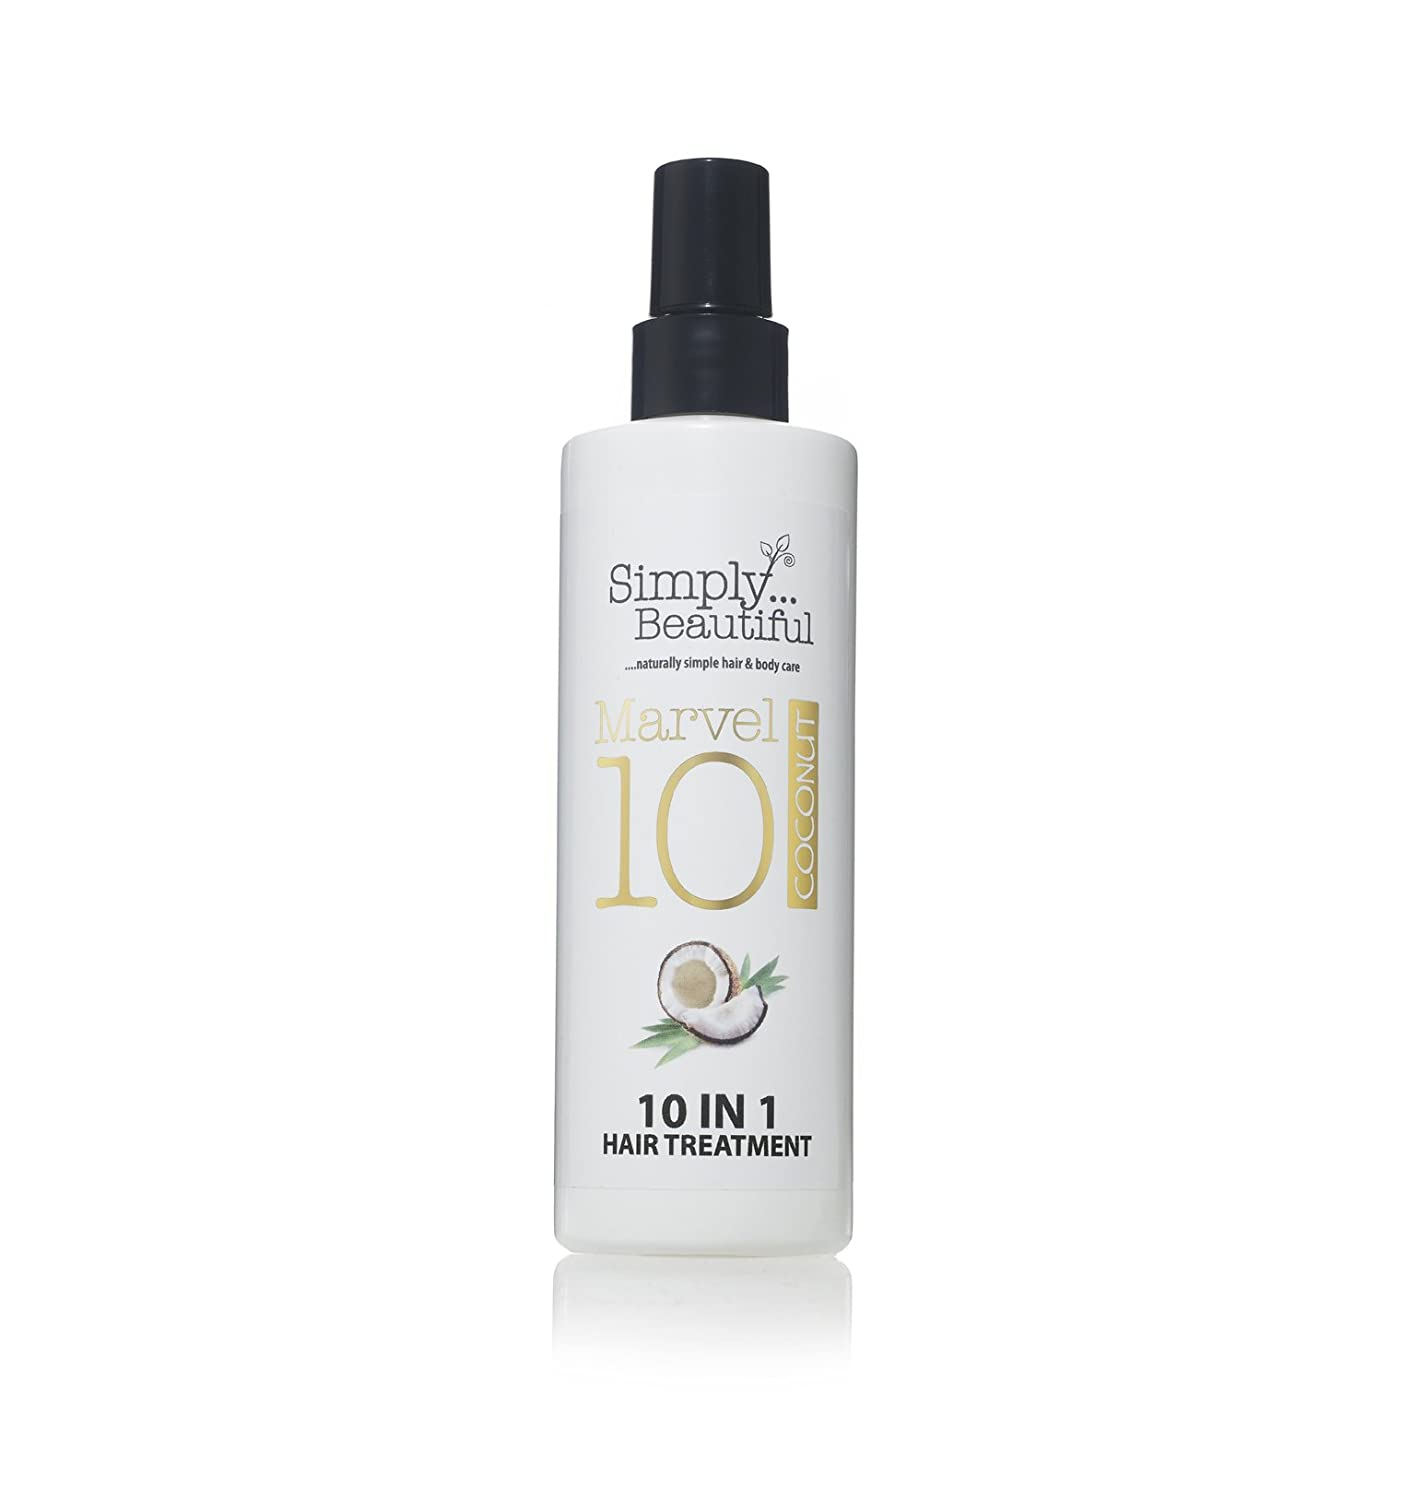 Coconut Heat Protection Spray and Damaged Hair Repair Treatment, 10 Amazing Treatments in 1 Bottle - 250ml Second Glance Beauty